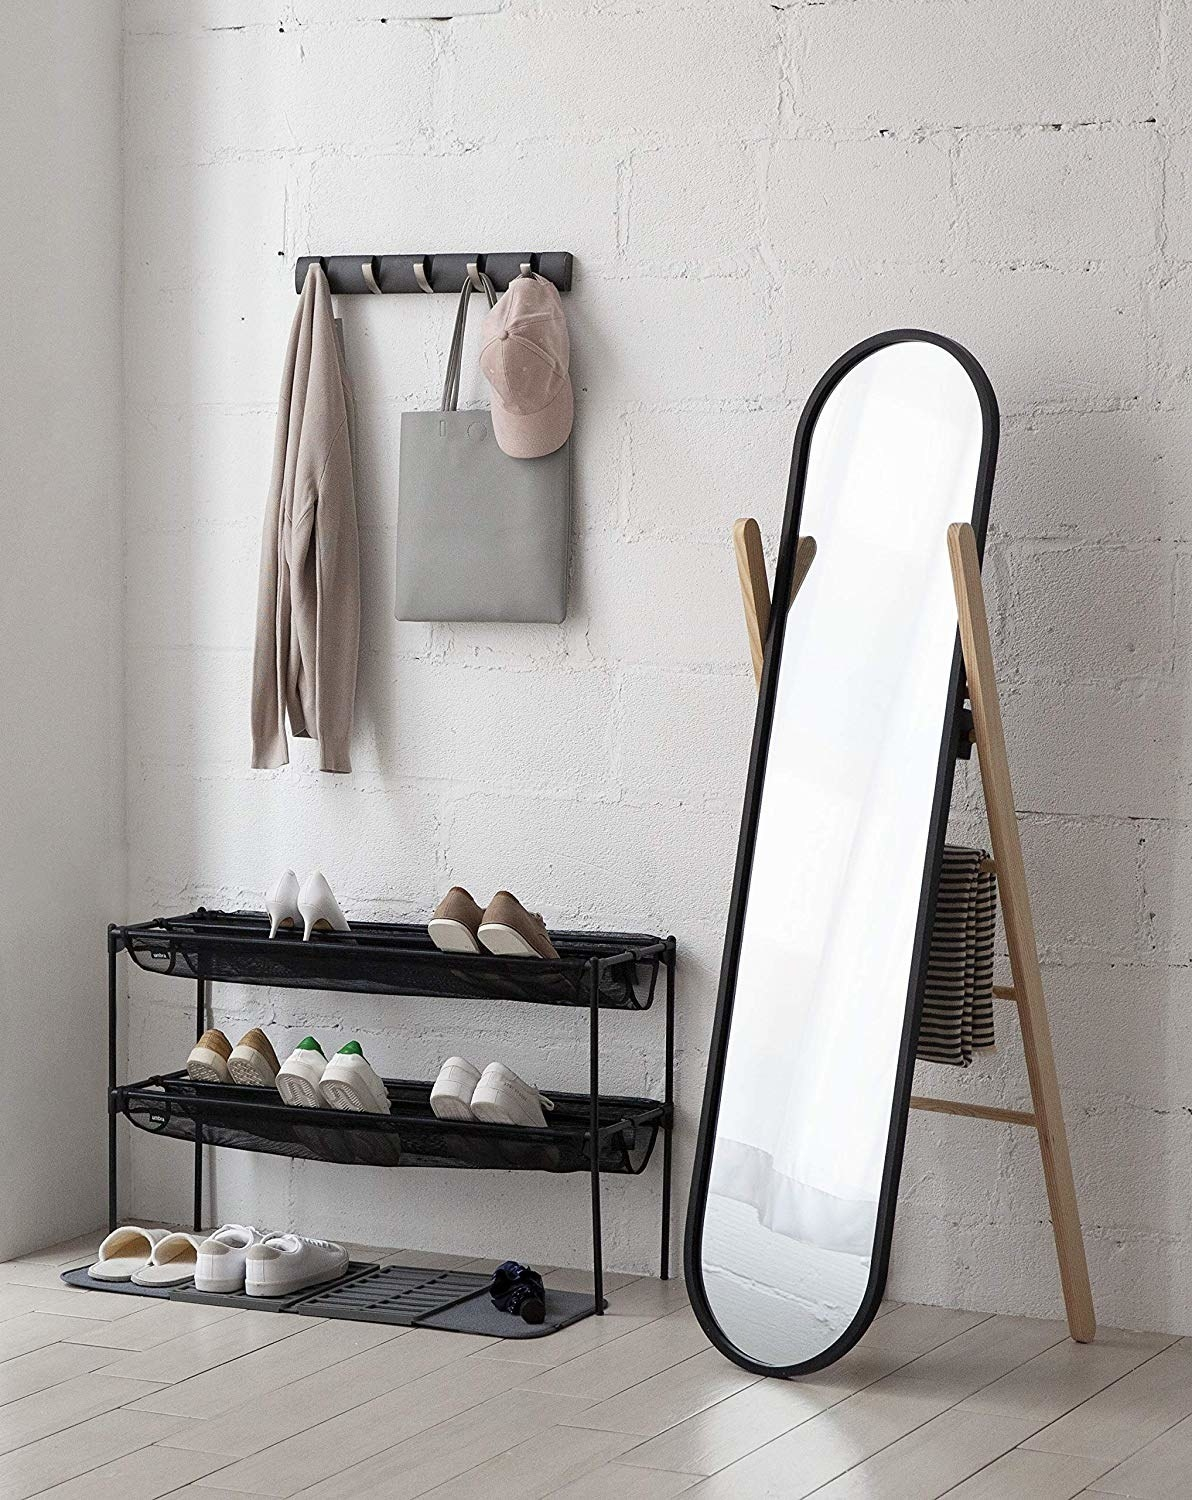 A long oval mirror standing at an angle, supported by a ladder back. The ladder has a scarf hanging from it.